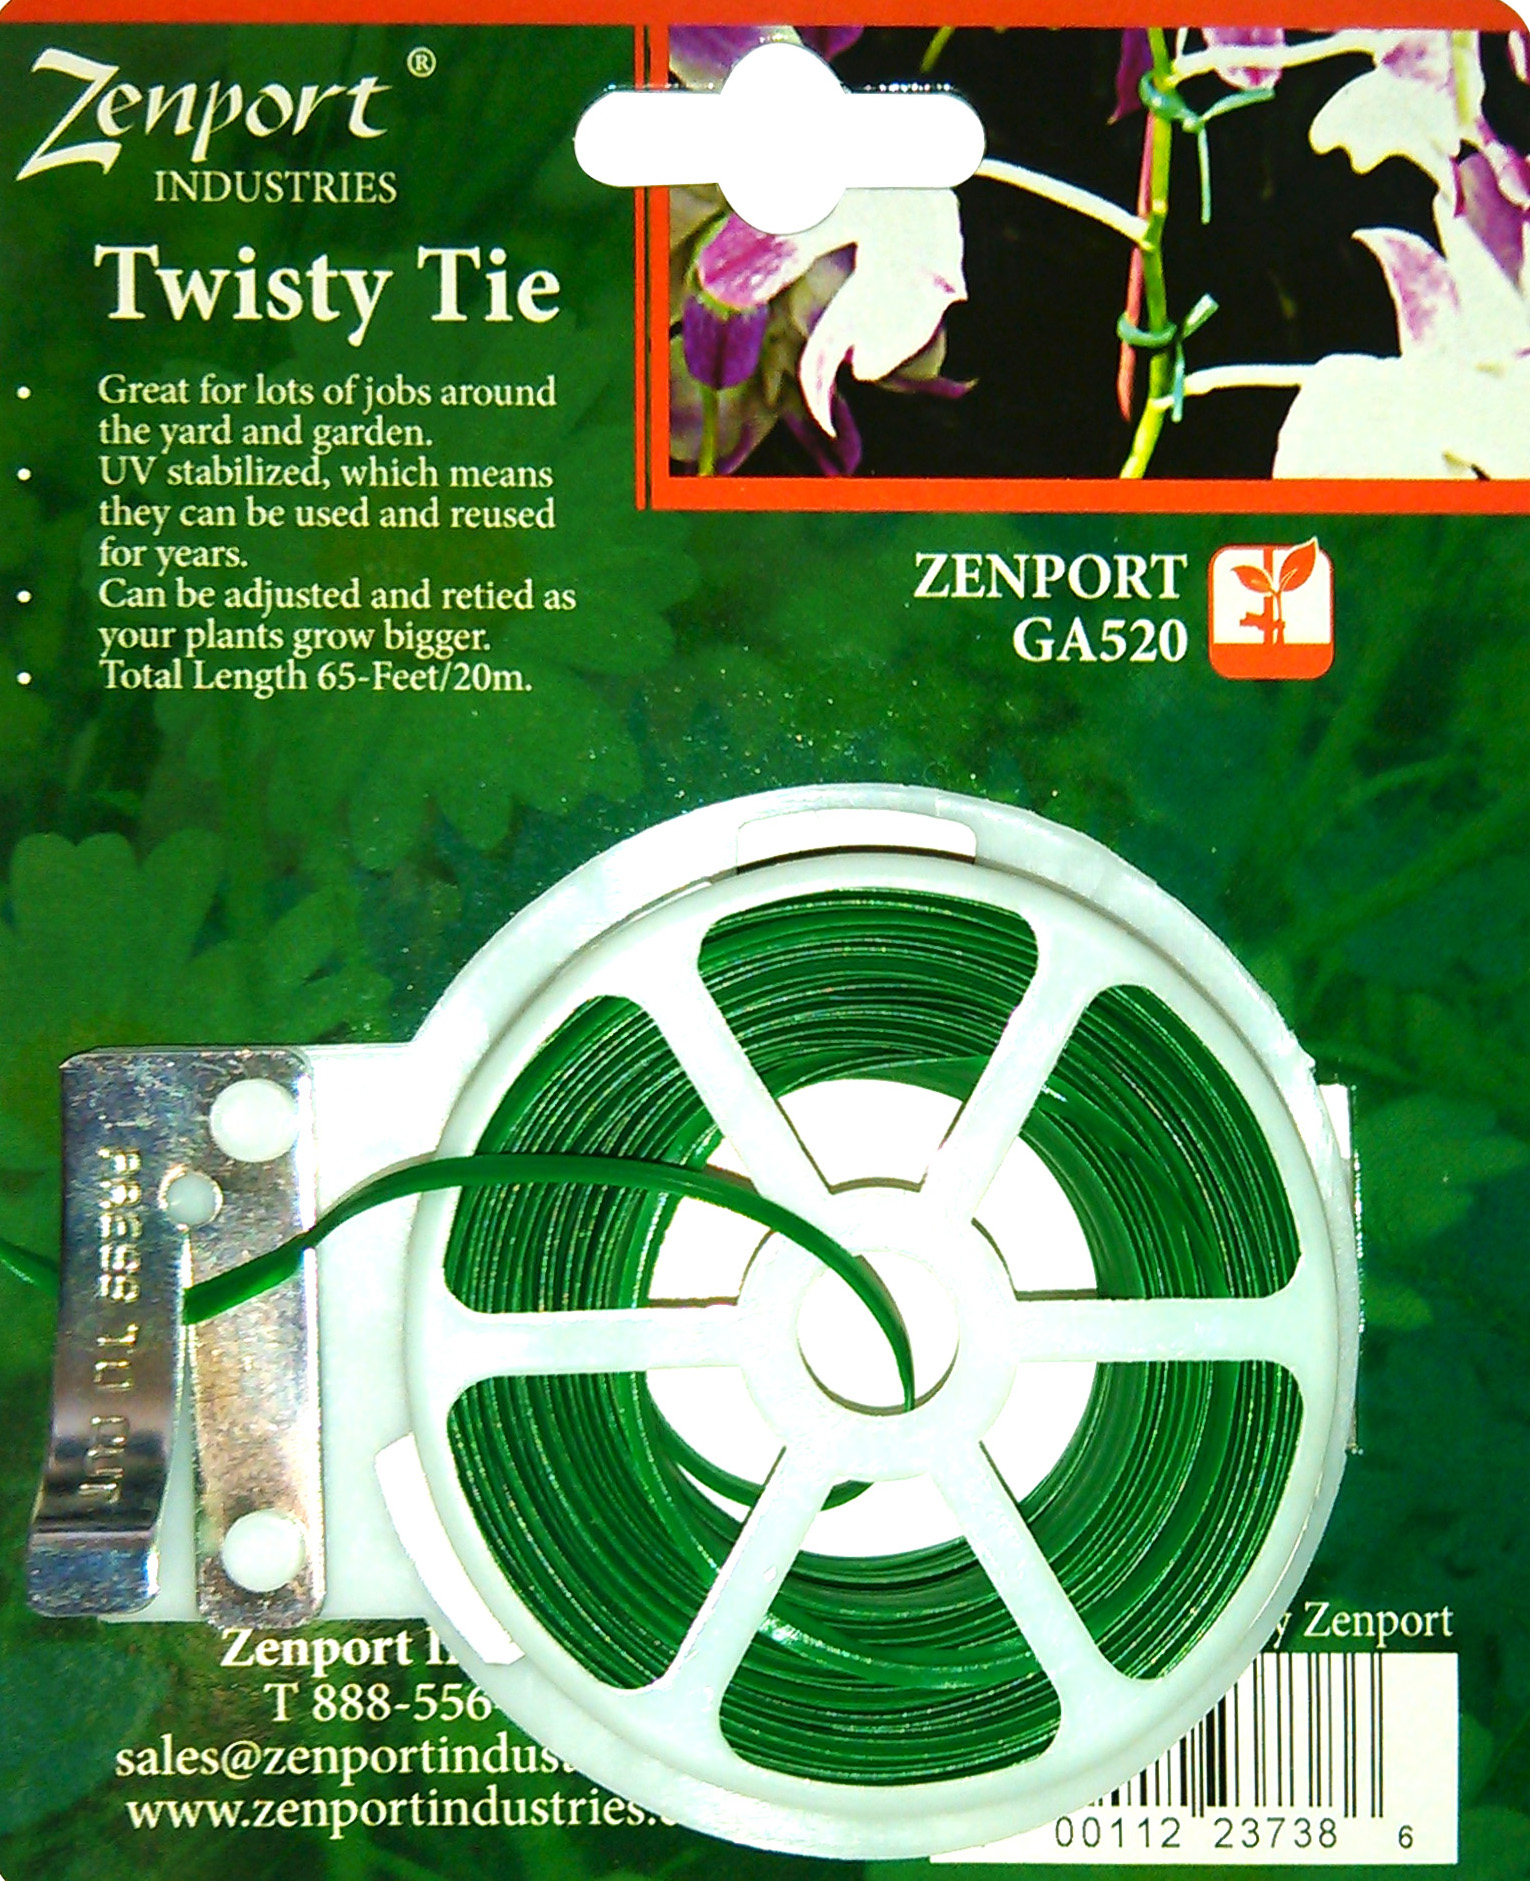 Zenport Plant Twisty Tie GA520 Garden Twisty Plant Tie, 65-Feet Long